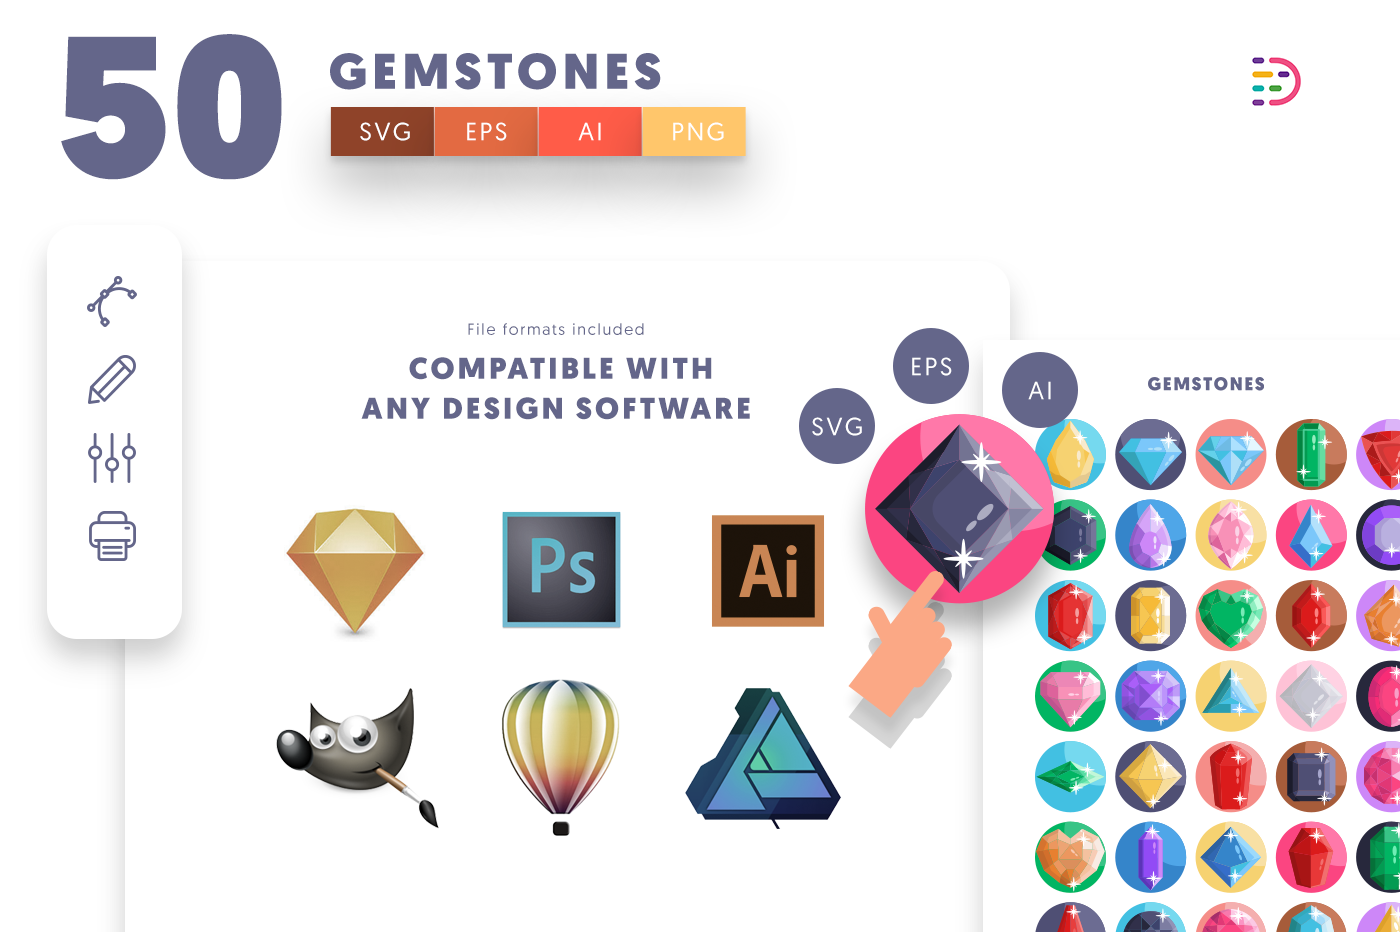 full vector 50 Gemstones Icons EPS, SVG, PNG